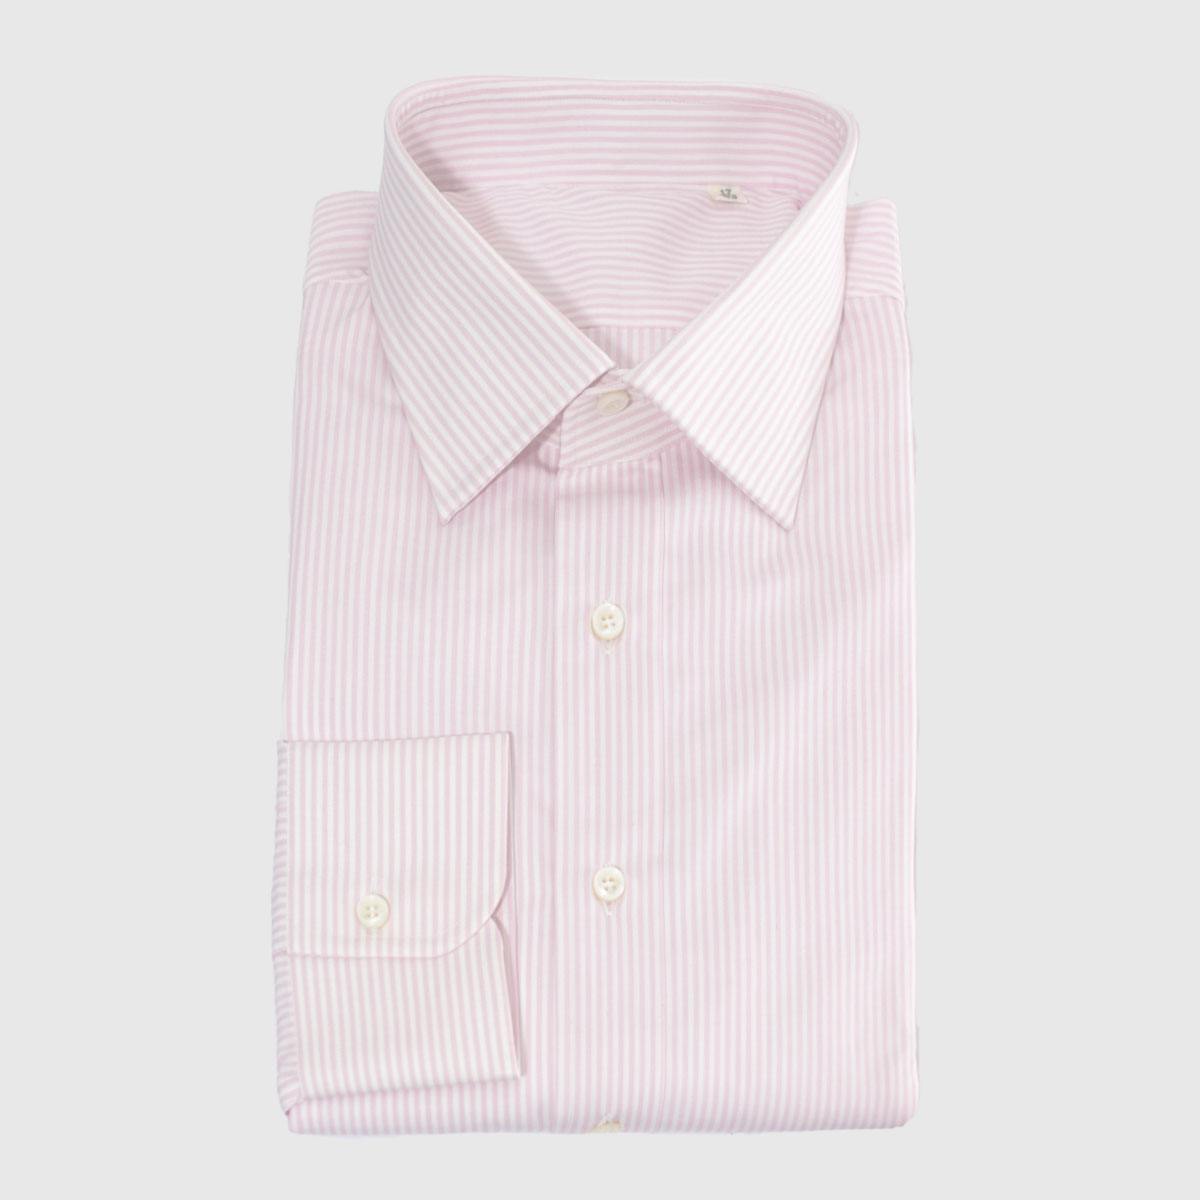 Popelin striped pink and with shirt